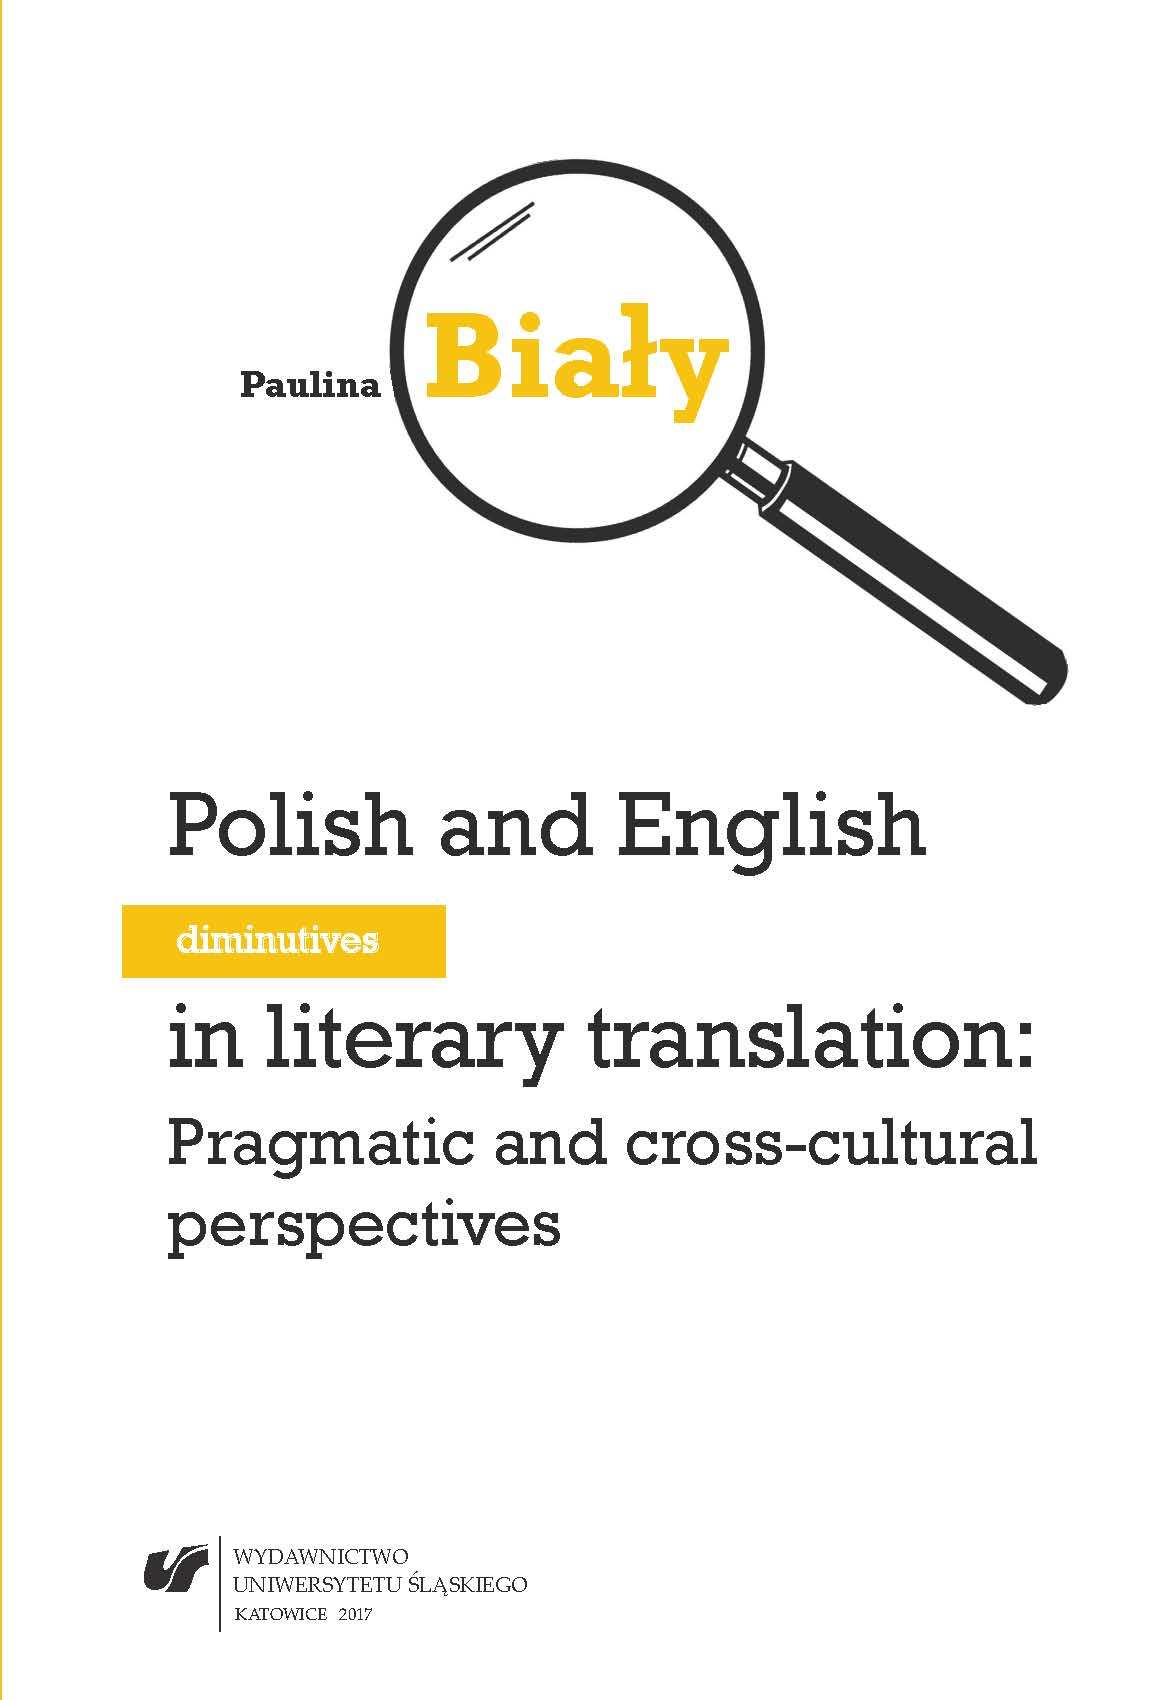 Polish and English diminutives in literary translation: Pragmatic and cross-cultural perspectives Cover Image